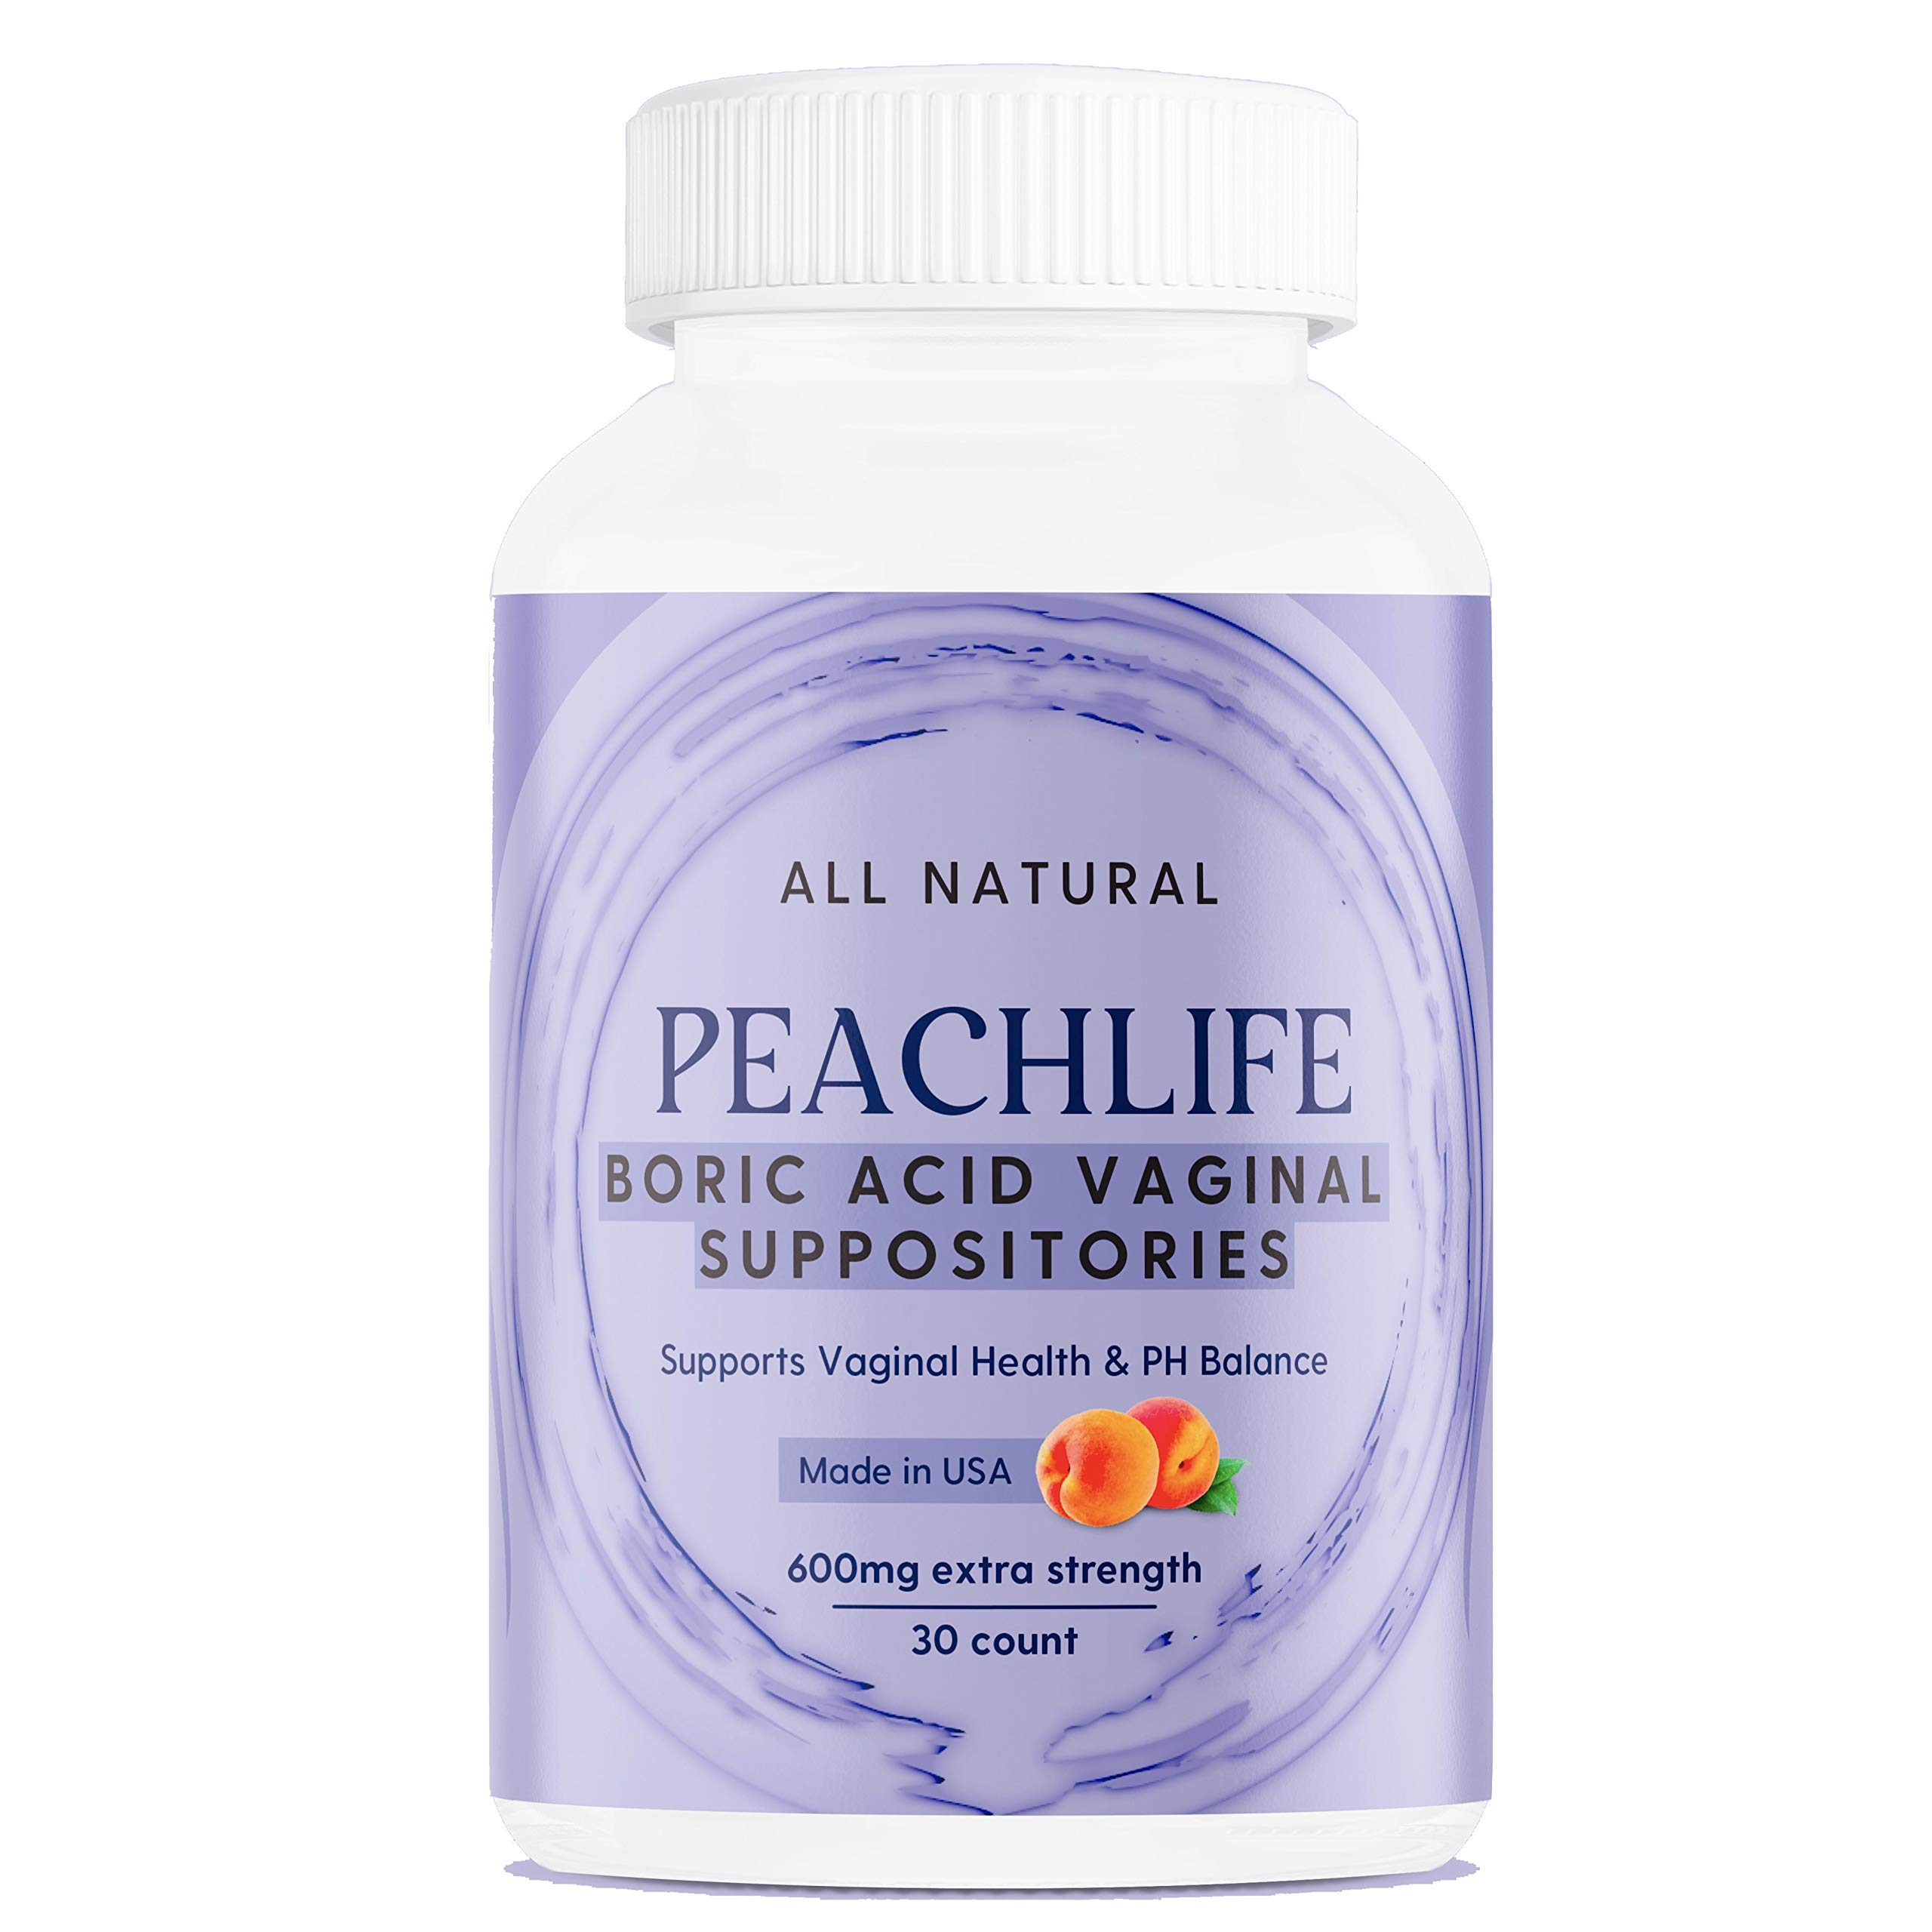 Peachlife Boric Acid Vaginal Suppositories - 30 Capsules, 600 mg - Made in USA - Bacterial Vaginosis, Yeast Infection, Candida, UTI Support - Ultra Fine Powder - Extra Strength